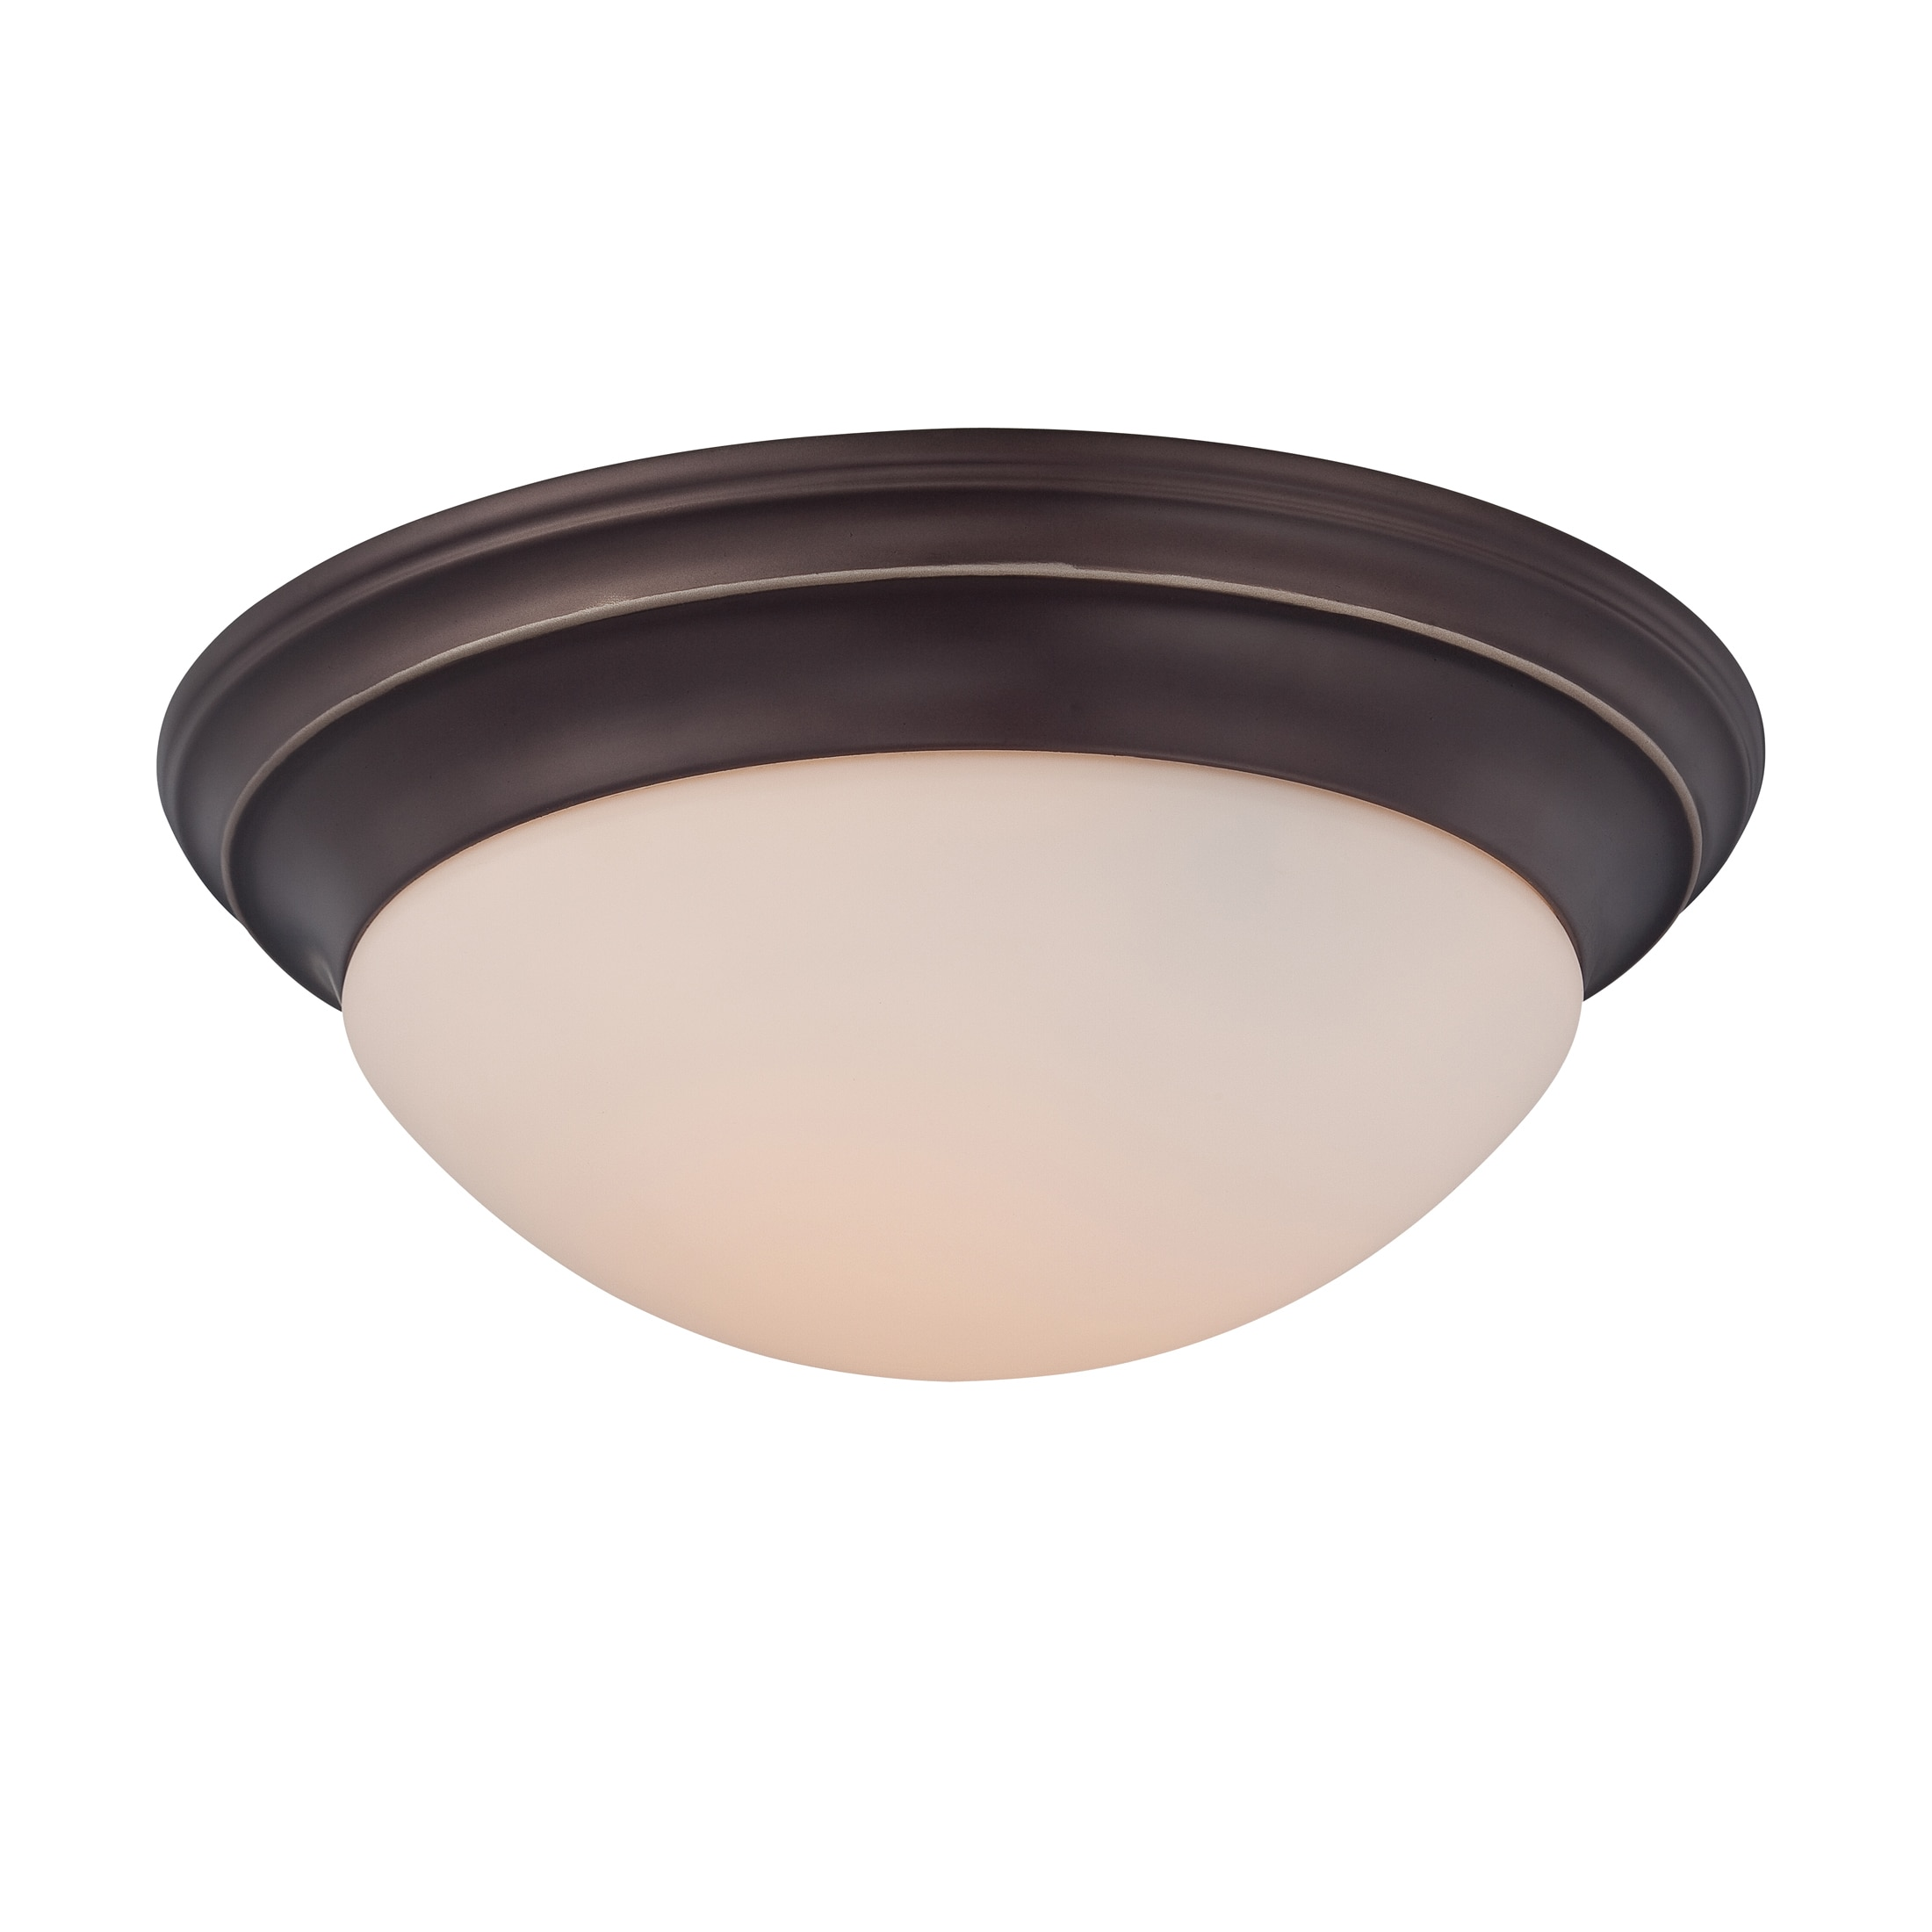 Quoizel 3-light Palladian Bronze Flush Mount by Overstock